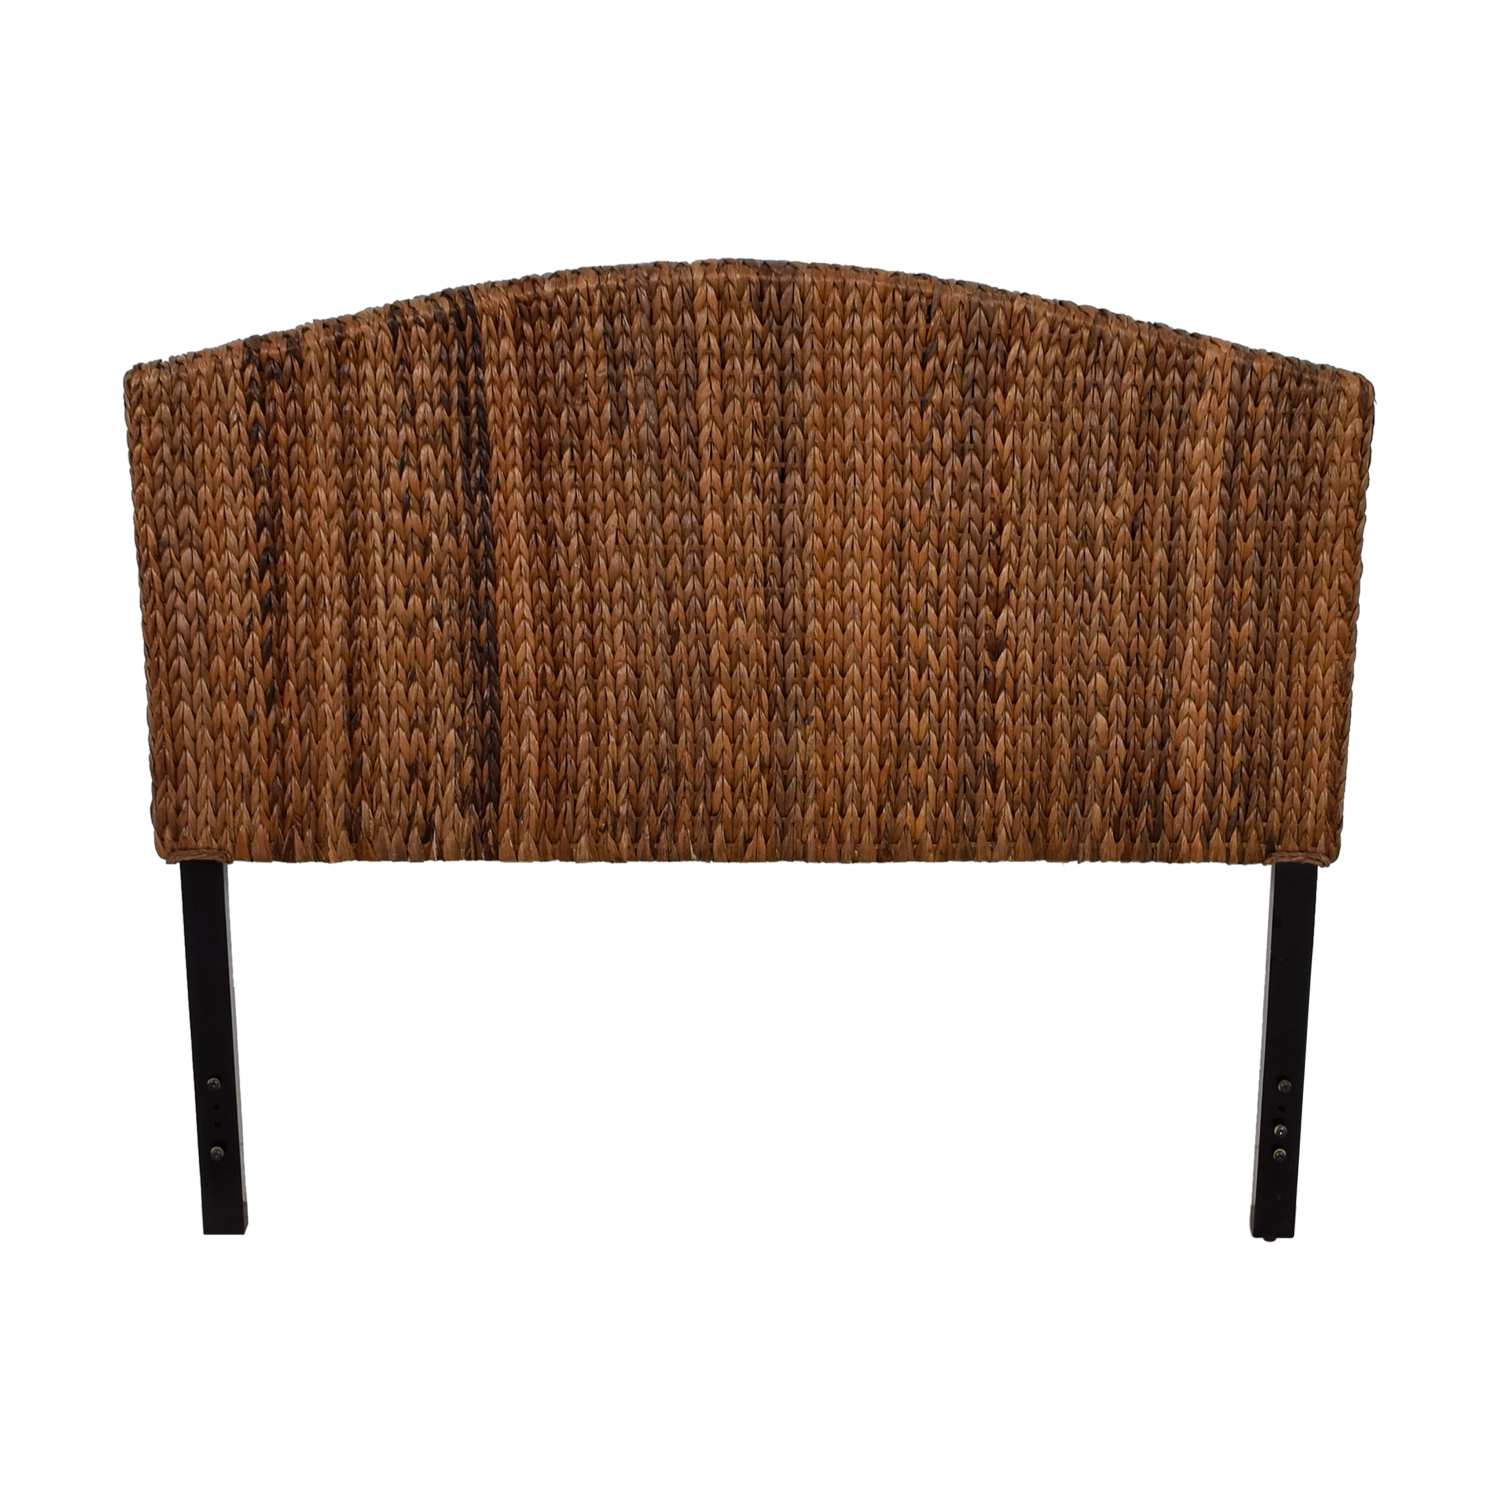 buy Espresso Banana Leaf Woven Queen Headboard